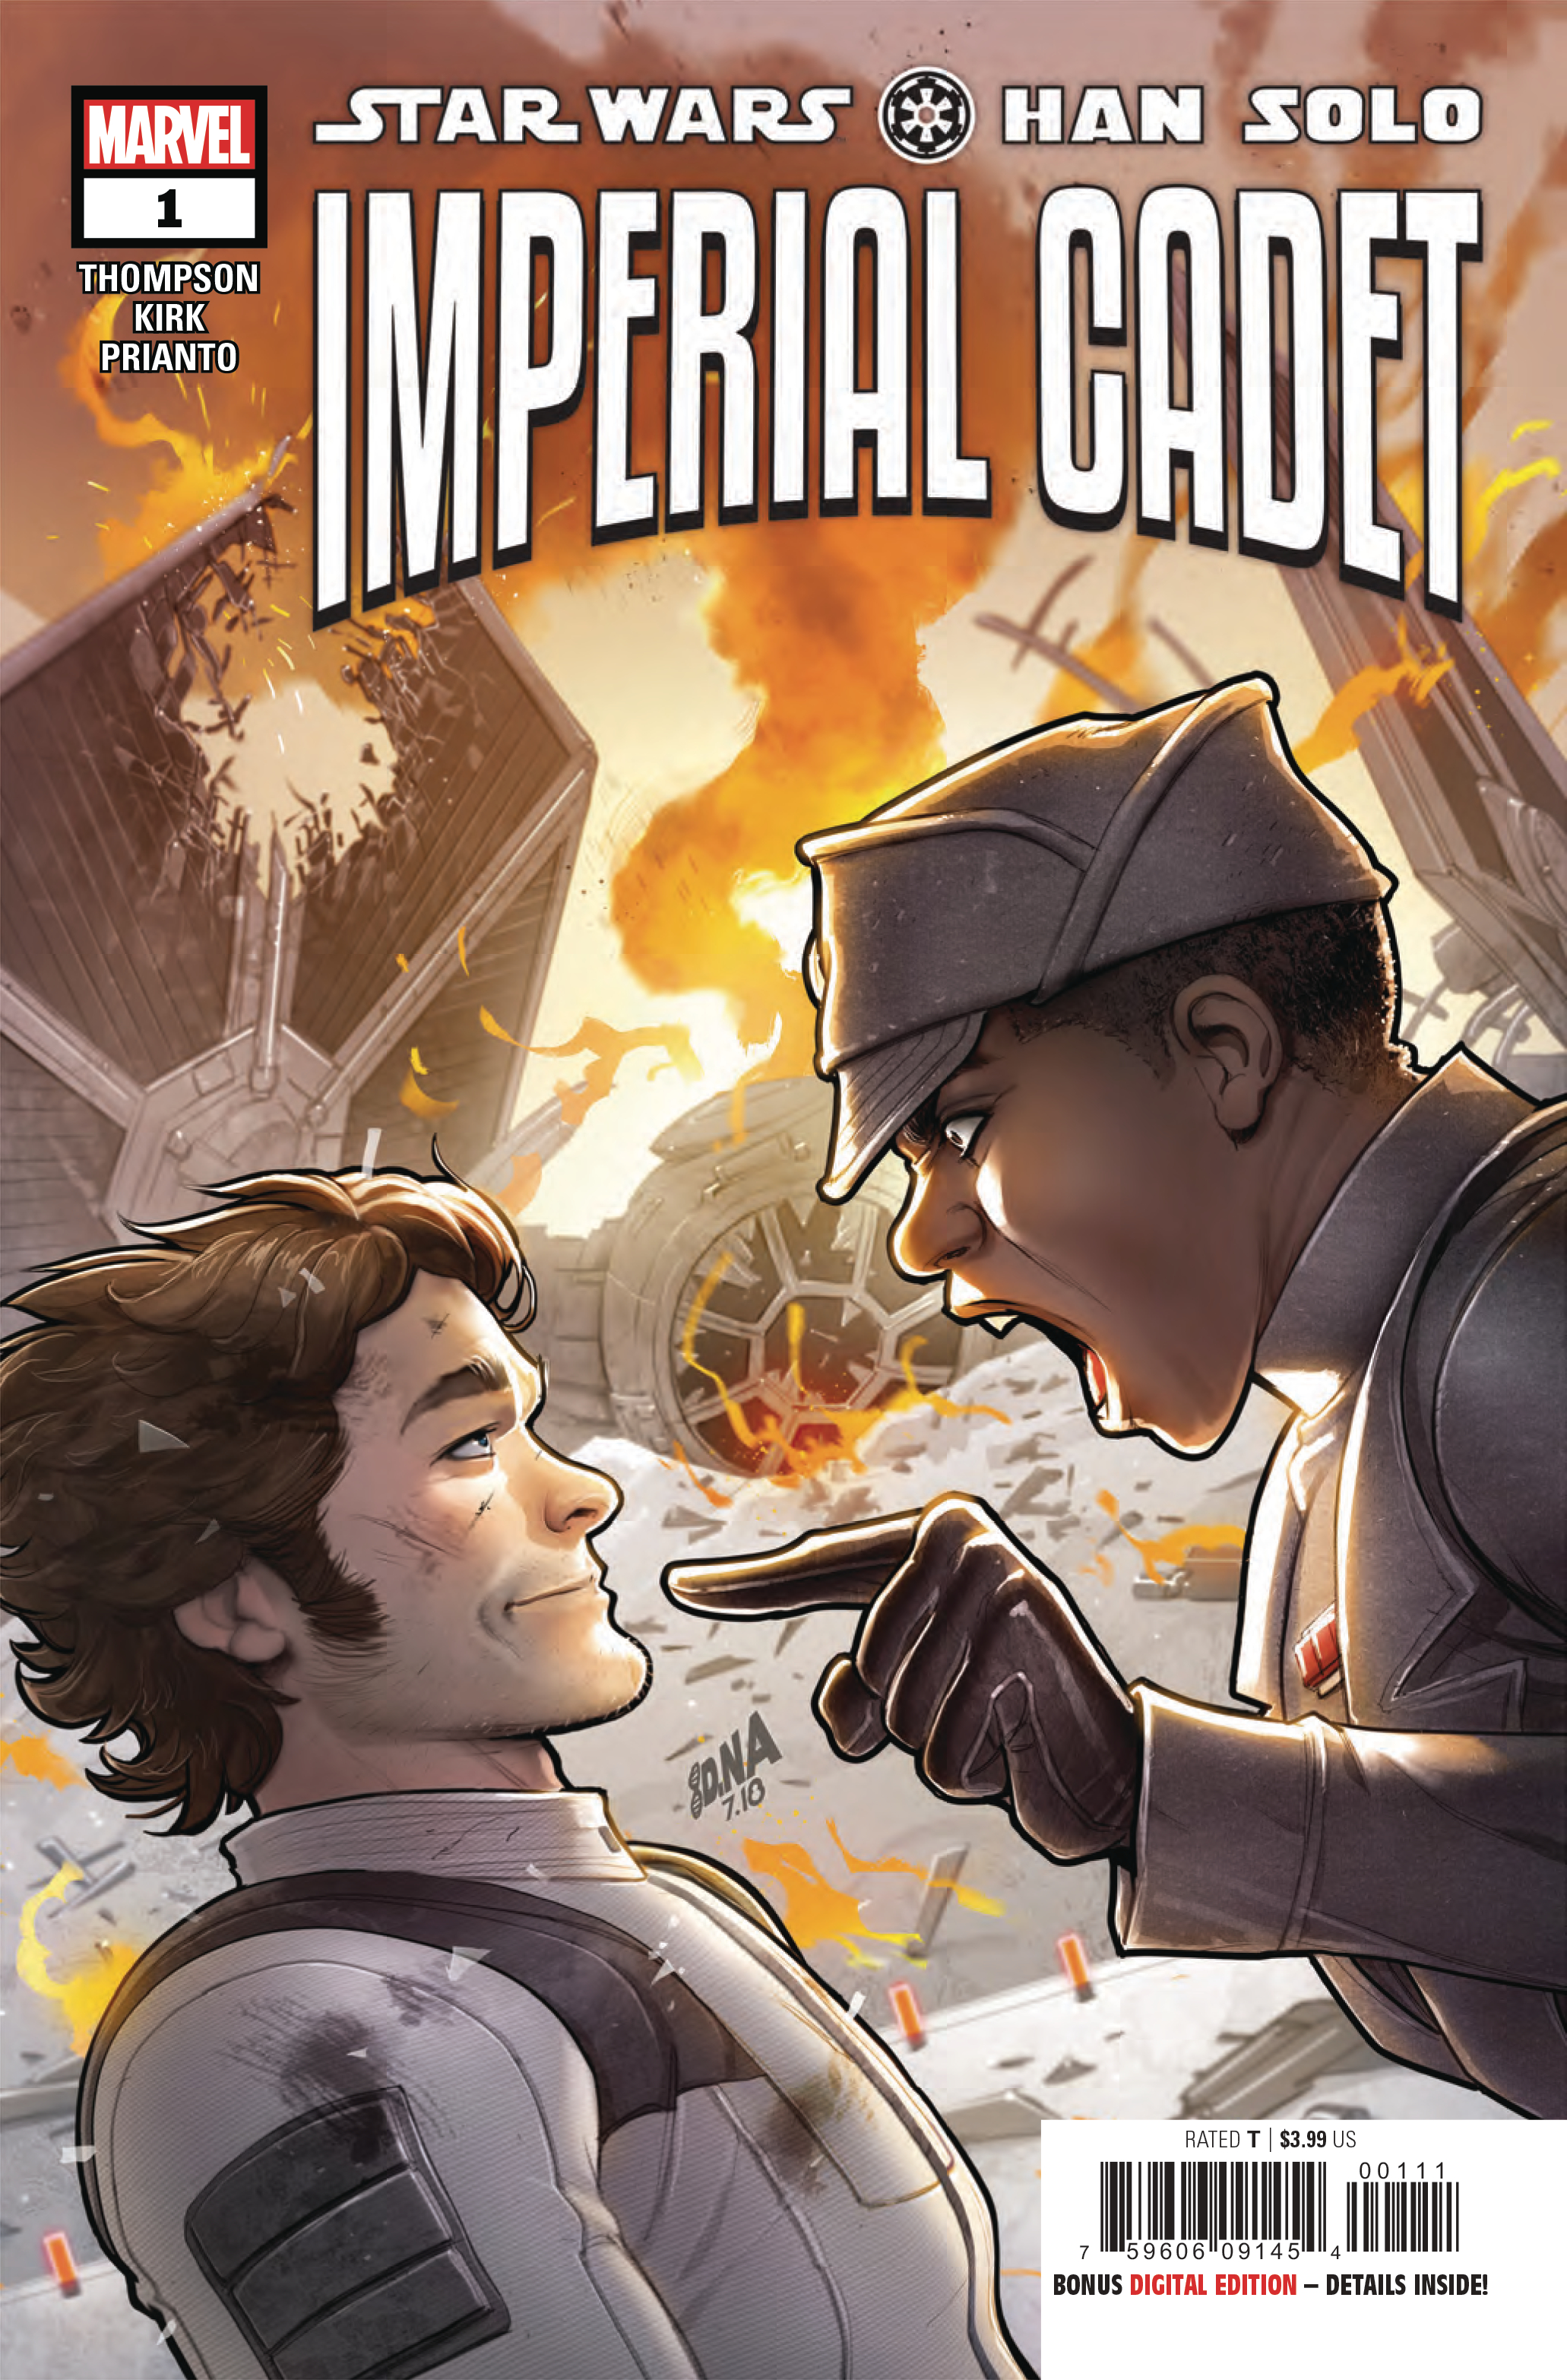 Star Wars: Han Solo - Imperial Cadet Vol 1 1